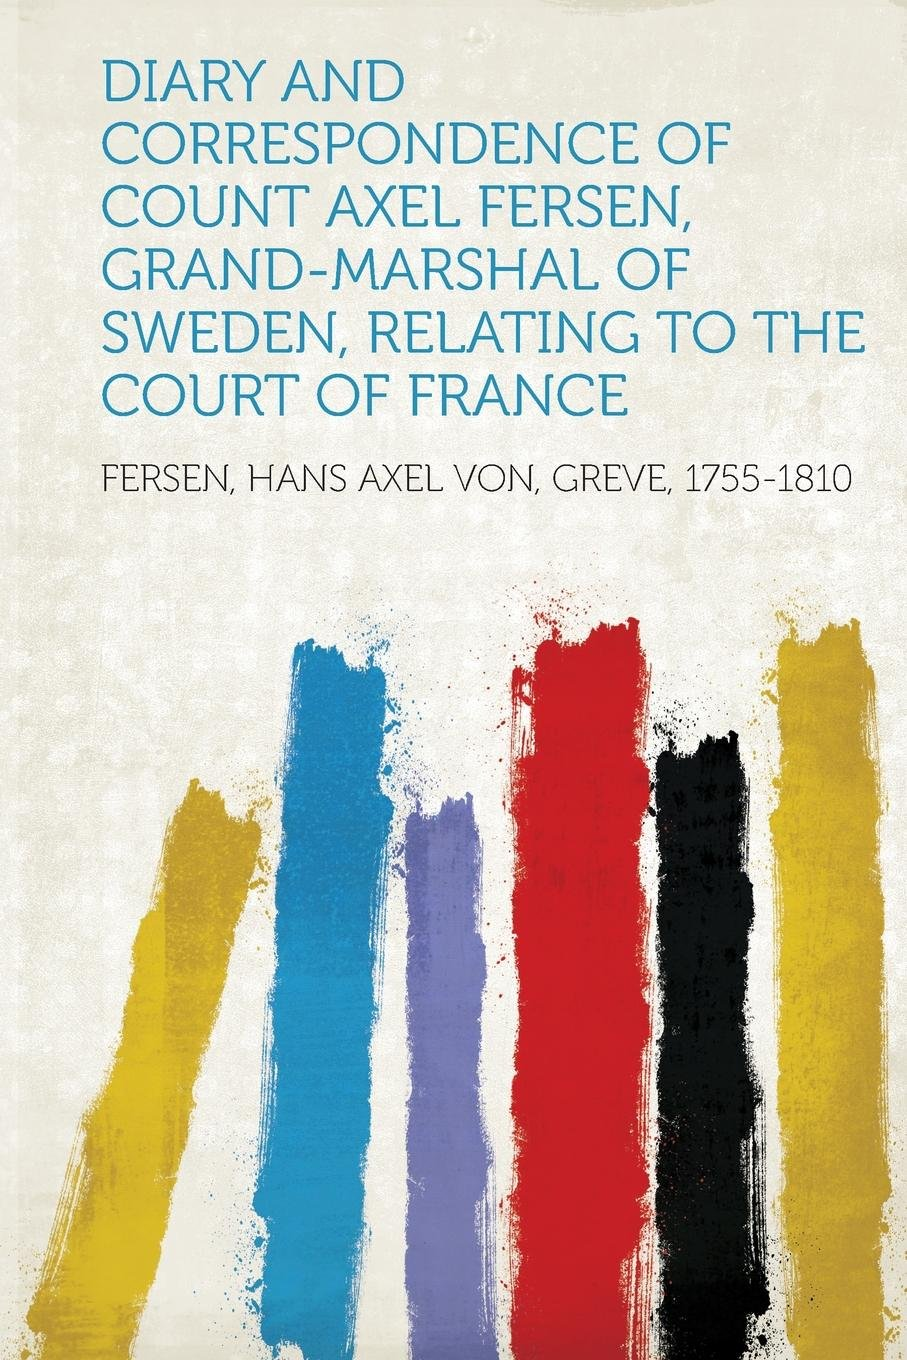 Diary and Correspondence of Count Axel Fersen, Grand-Marshal of Sweden,  Relating to the Court of France: Fersen Hans Axel Von Greve 1755-1810: ...